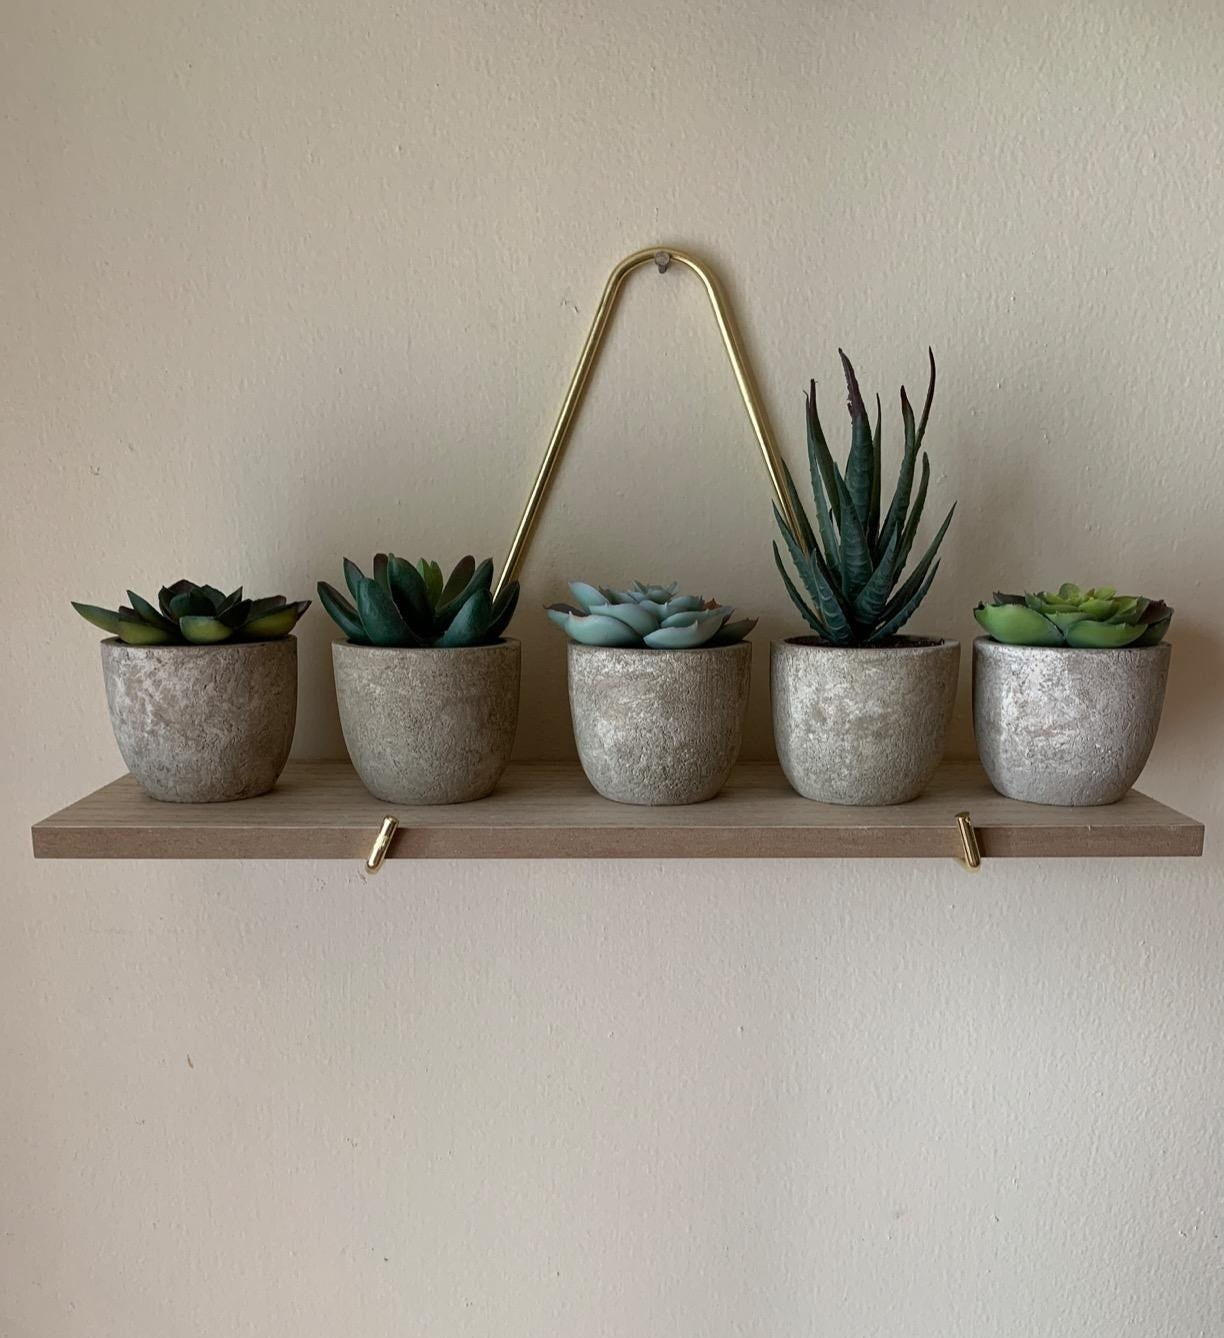 Set of five succulents in pots sitting on a wooden shelf